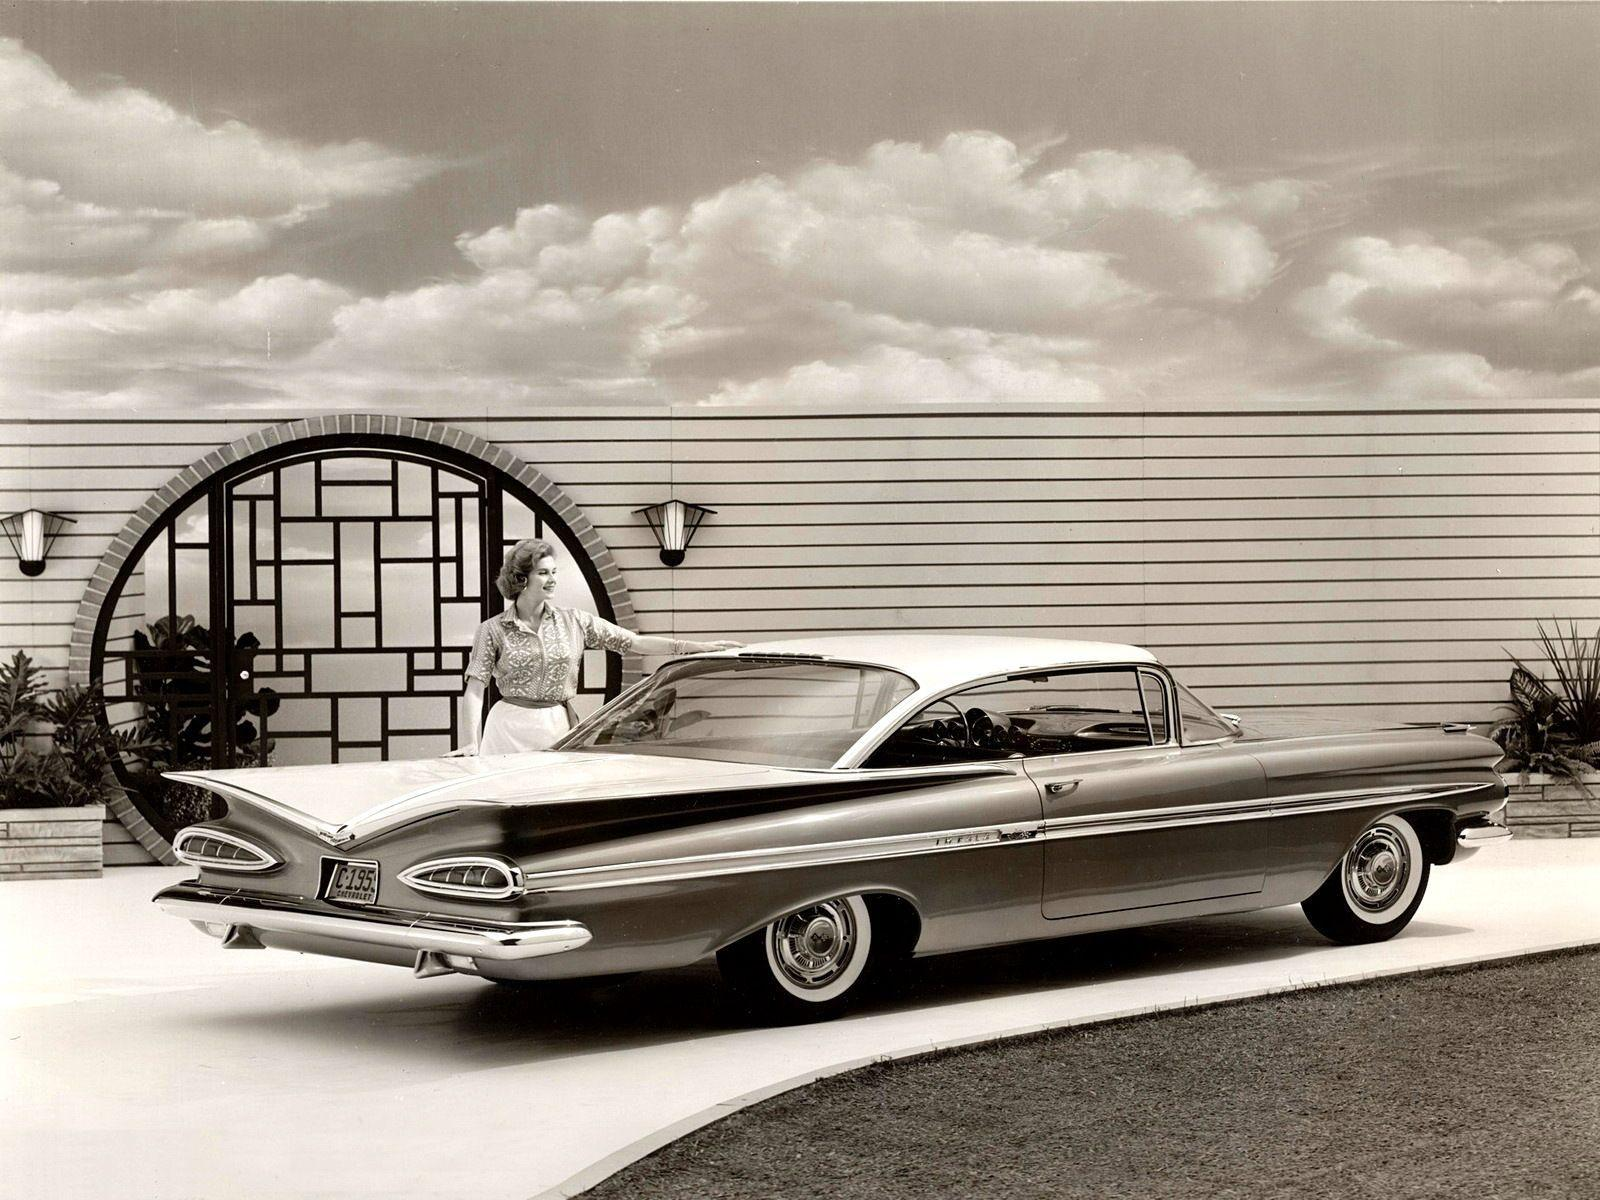 1000+ images about 1959 impalas on Pinterest | Chevy, El camino ...